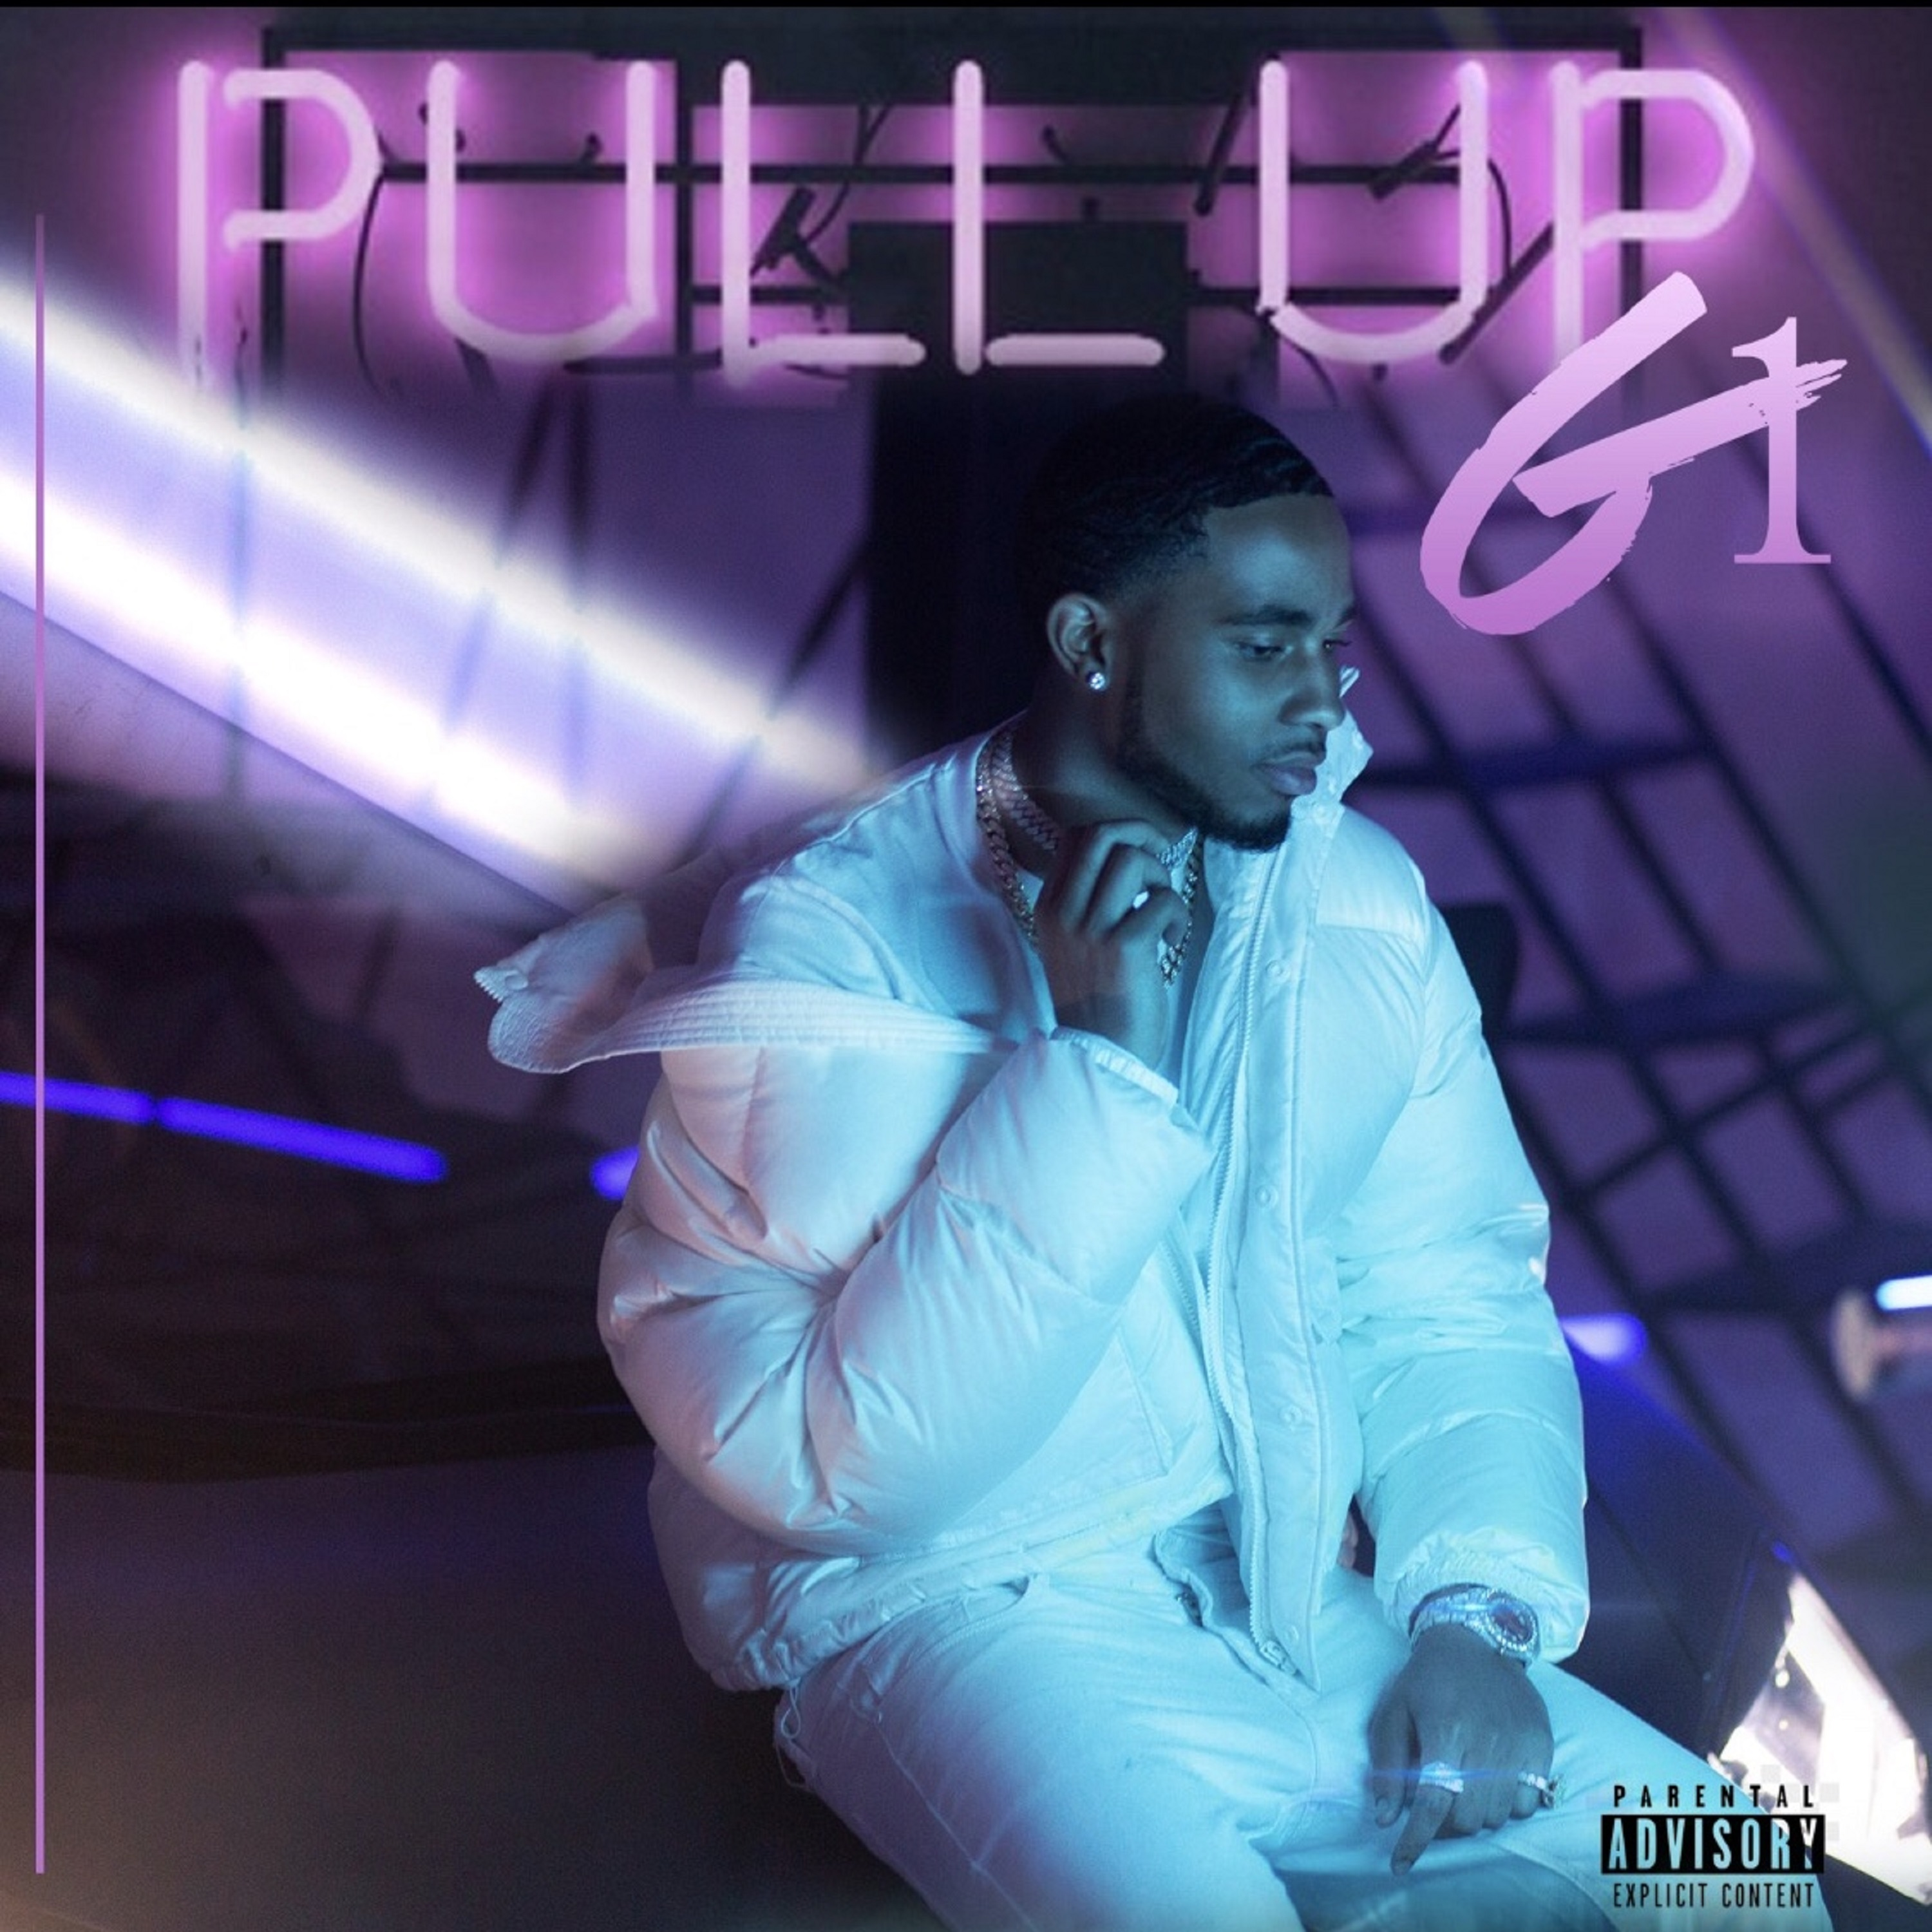 """G1 addresses a difficult love in new music video, """"Pull Up"""""""